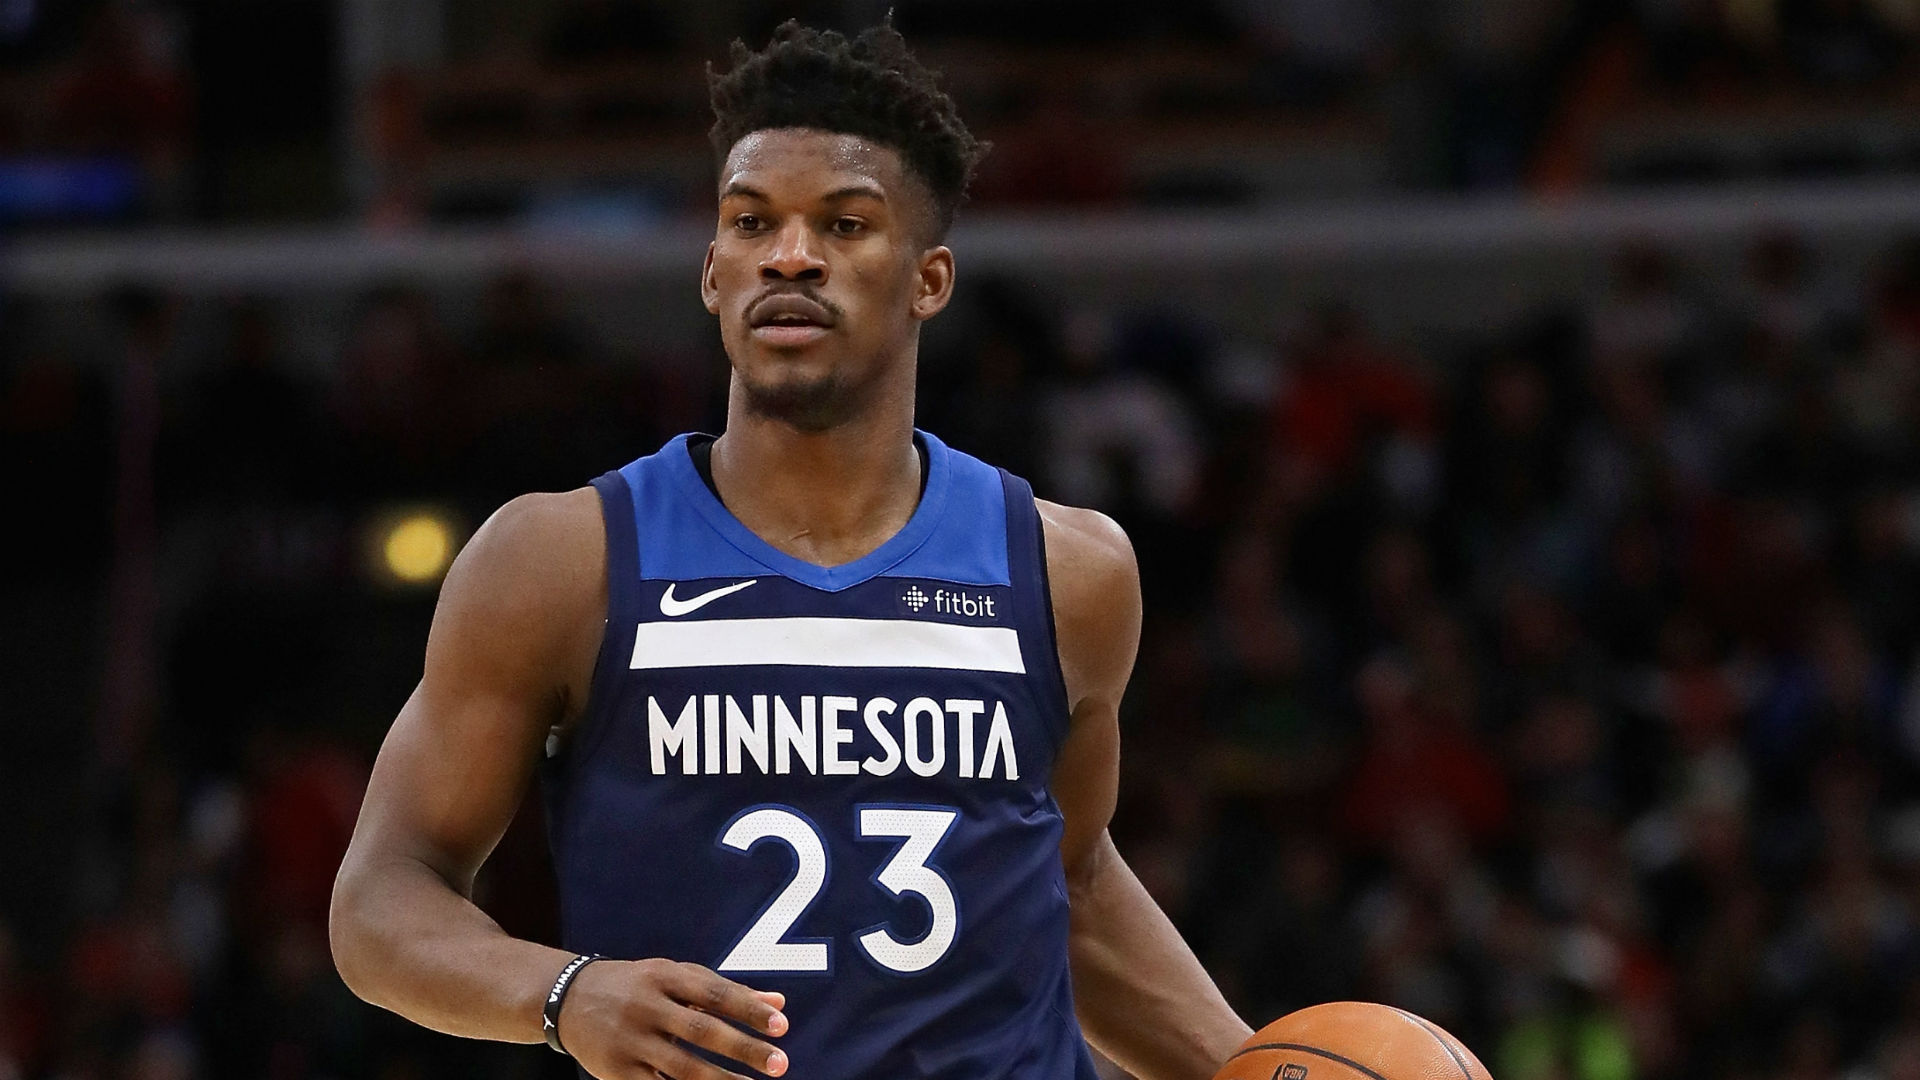 Jimmy Butler tells Timberwolves he'll 'let them know' which upcoming games he'll play